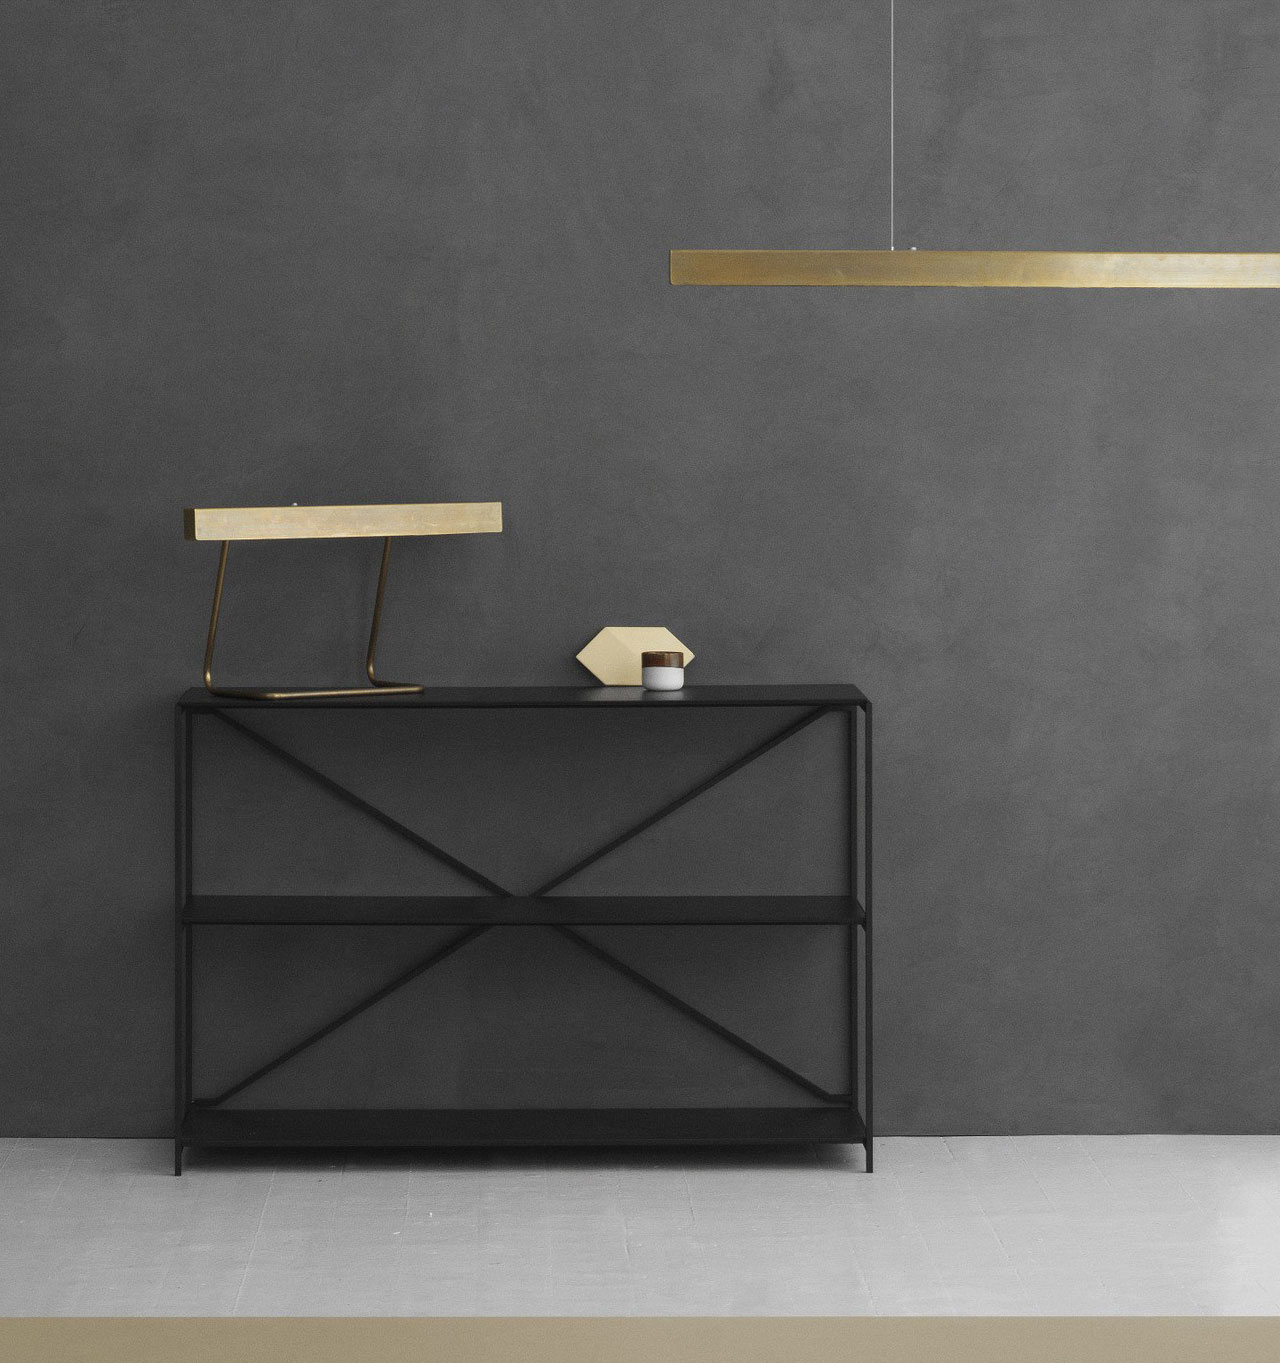 The slim modern copper lighting by Anour (Arash Nourinejad).